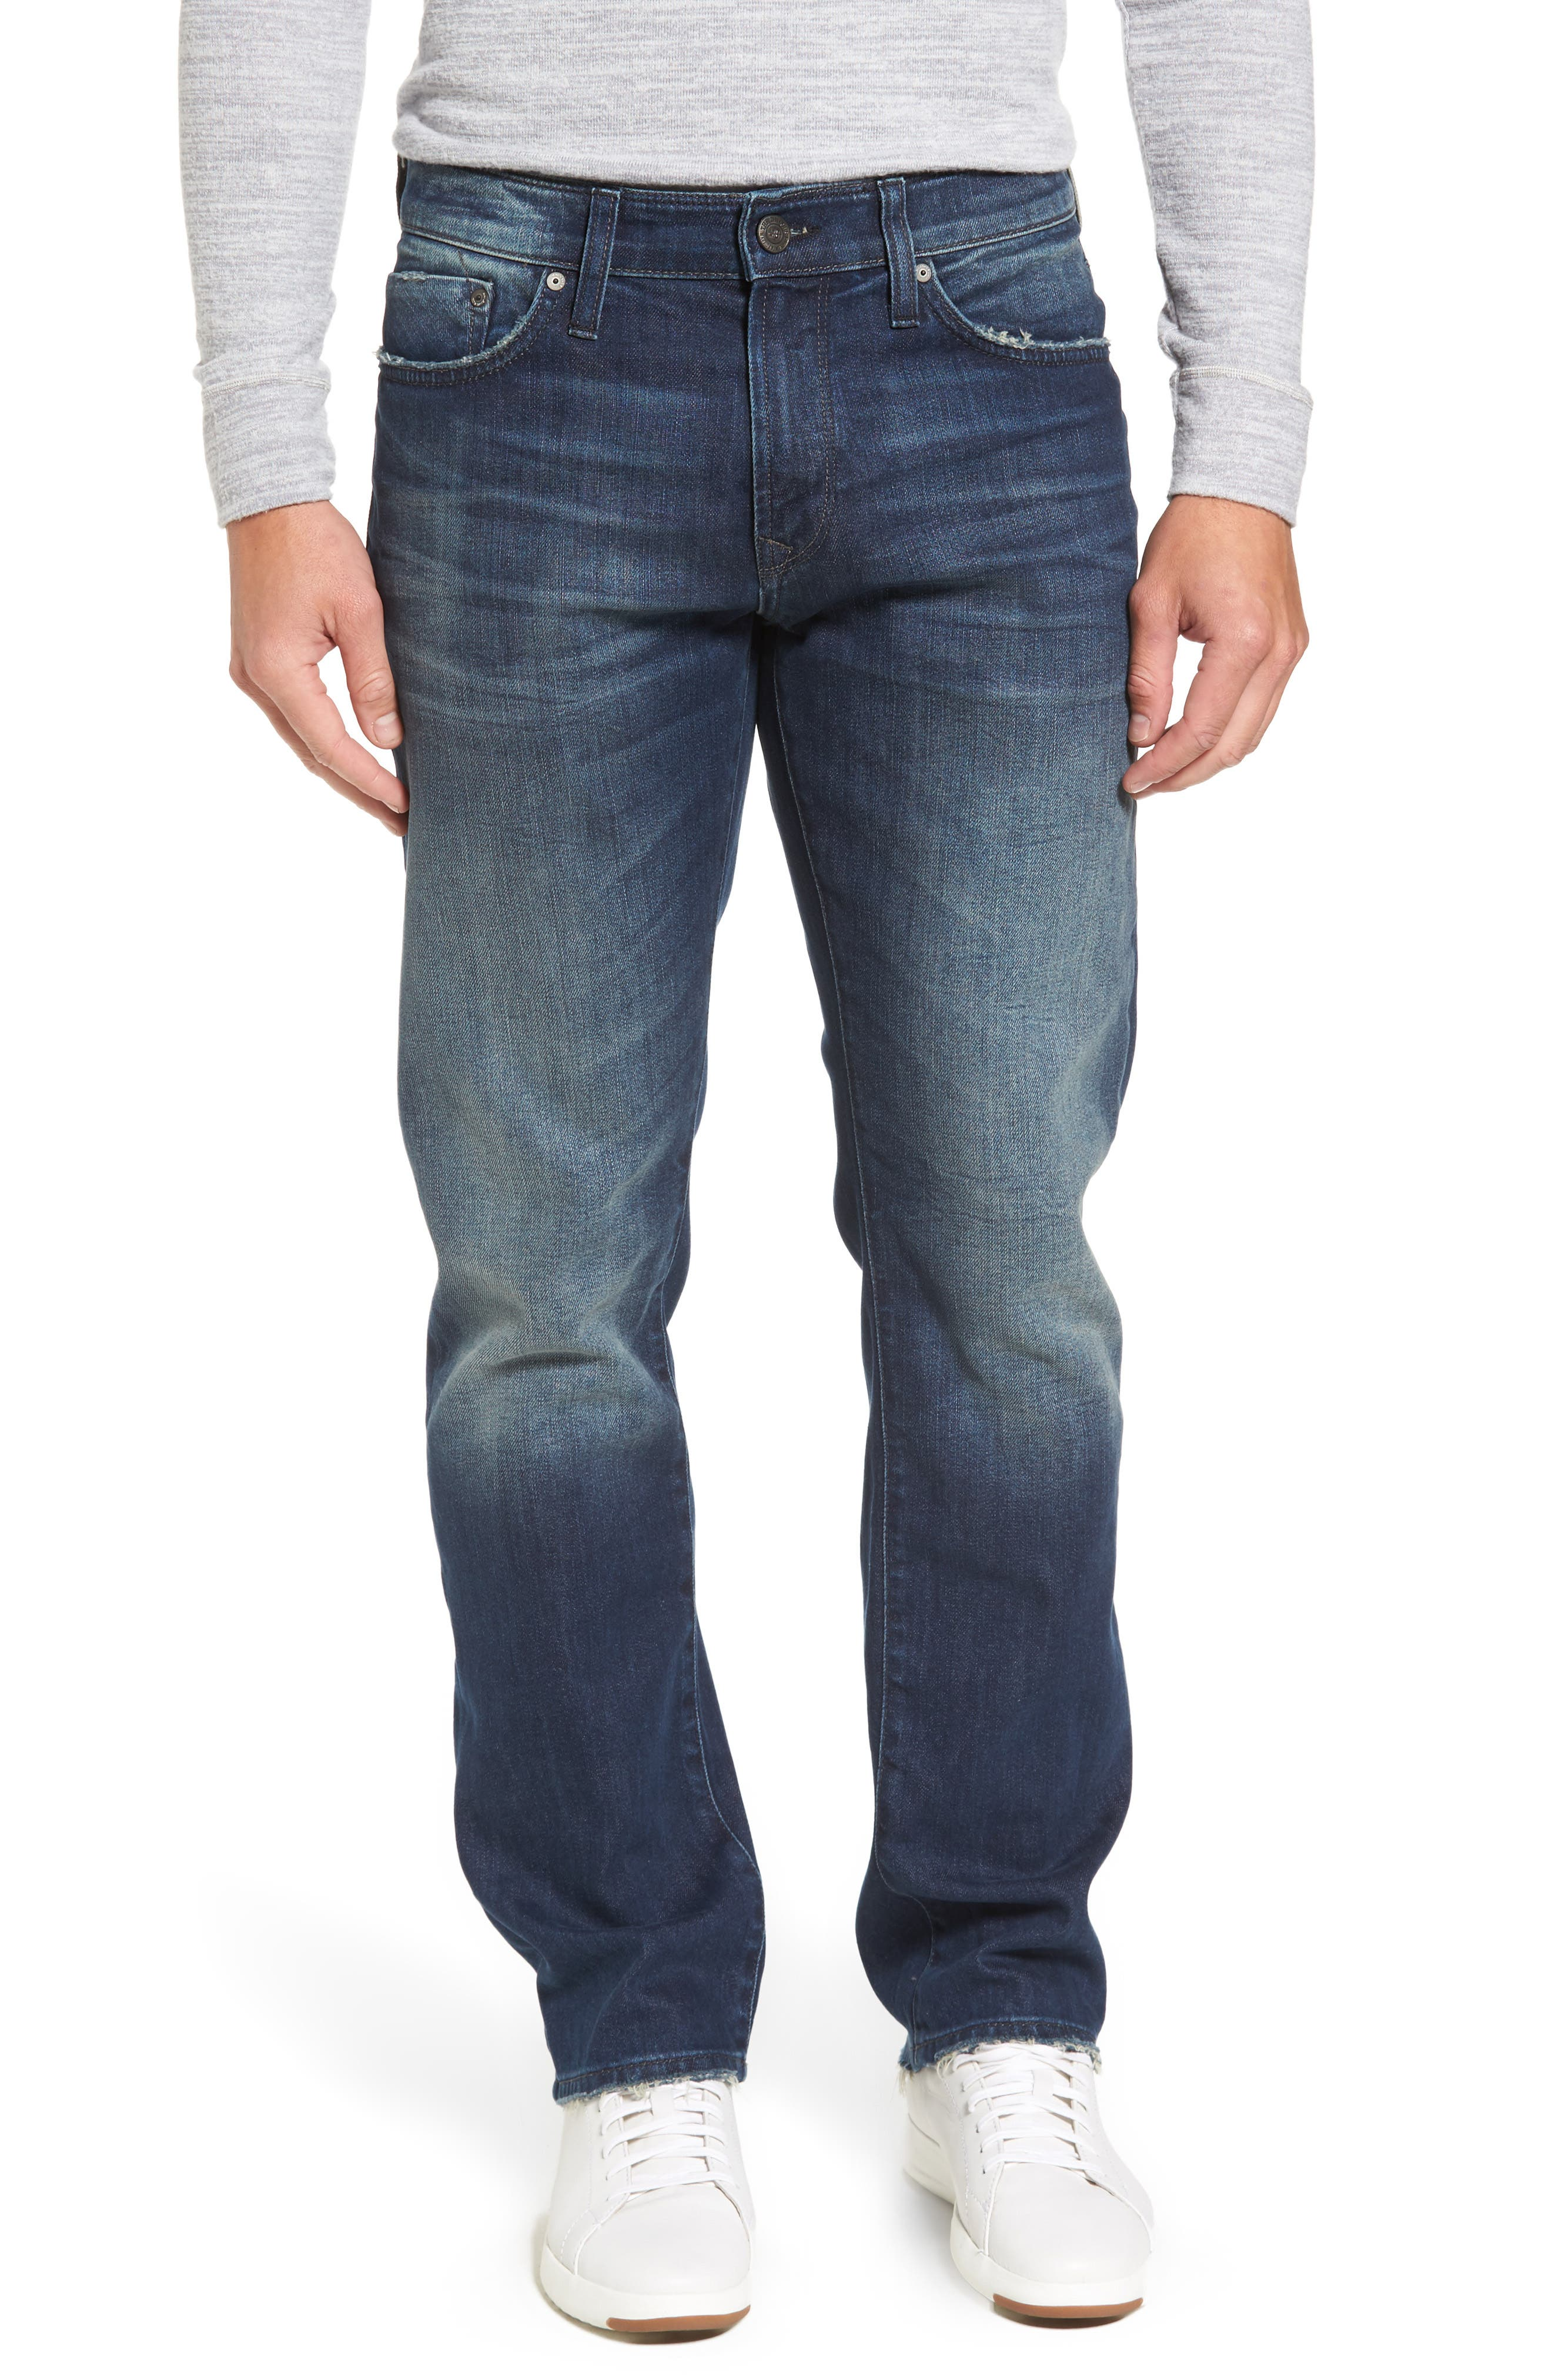 Alternate Image 1 Selected - Mavi Jeans Zach Straight Leg Jeans (Light Shaded Authentic Vintage)